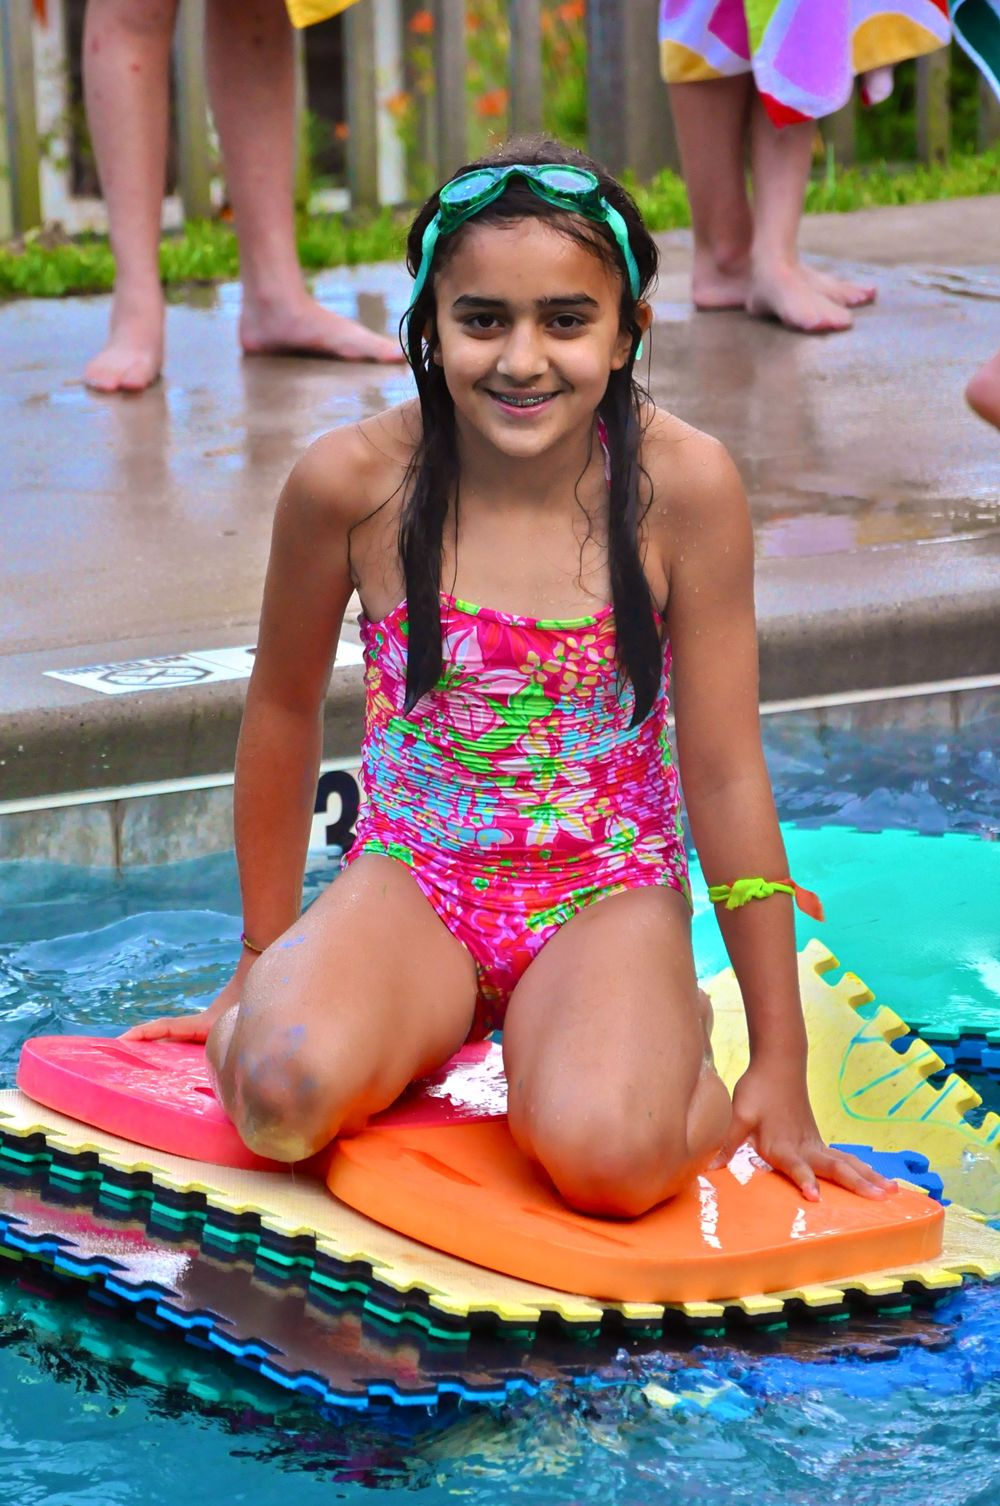 ana-has-built-herself-a-raft-during-free-swim.jpg